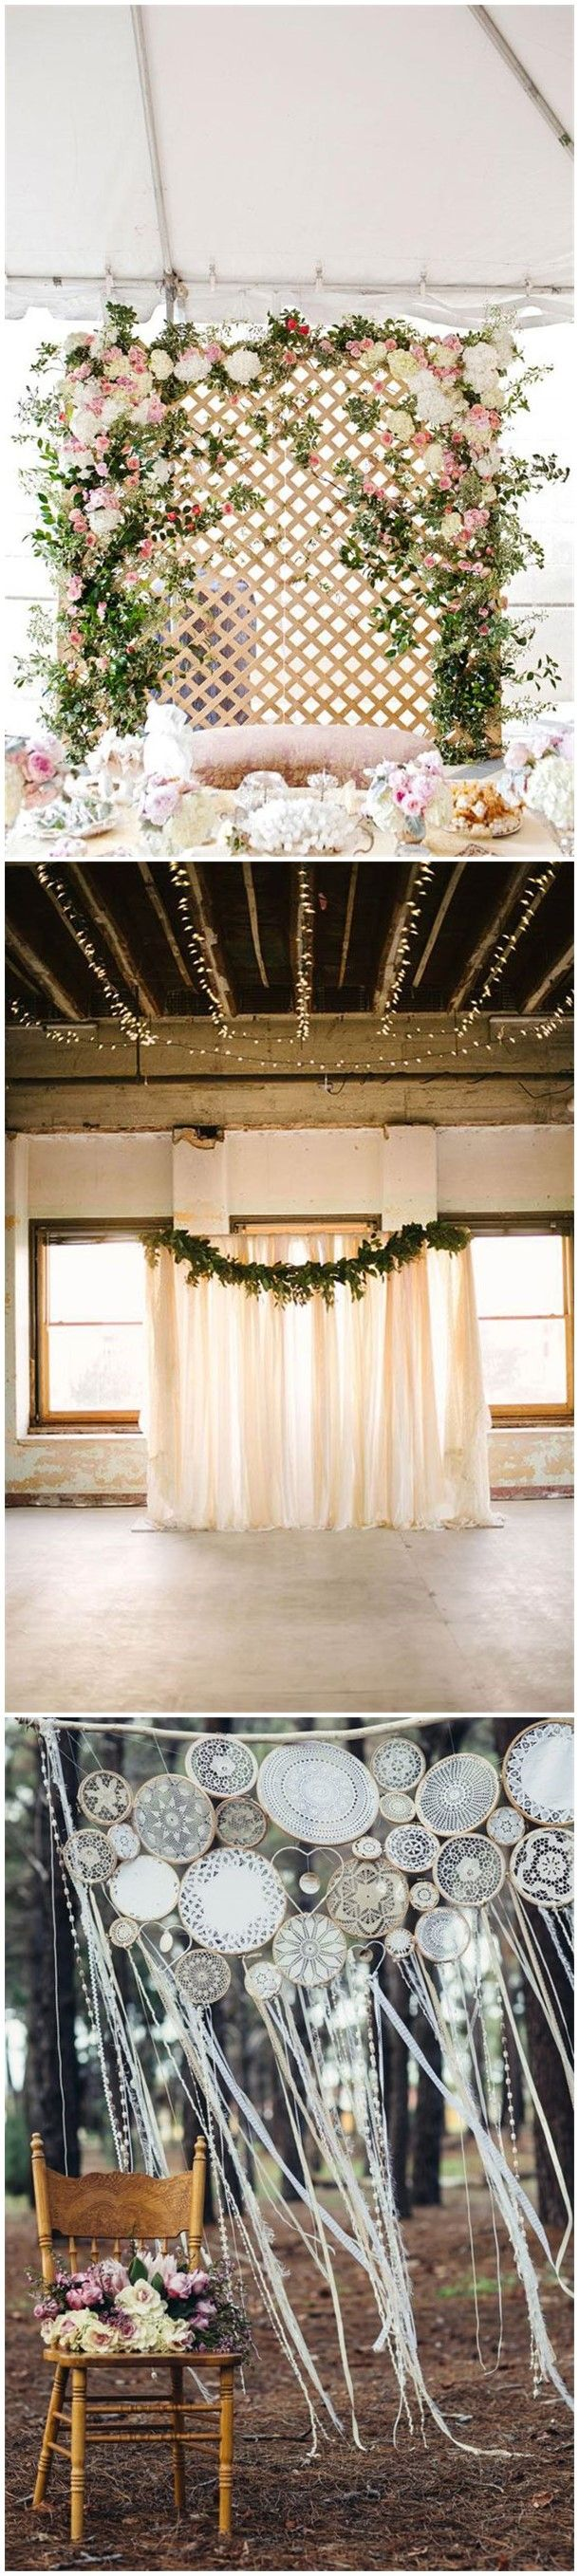 unique and breathtaking wedding backdrop ideas pinterest